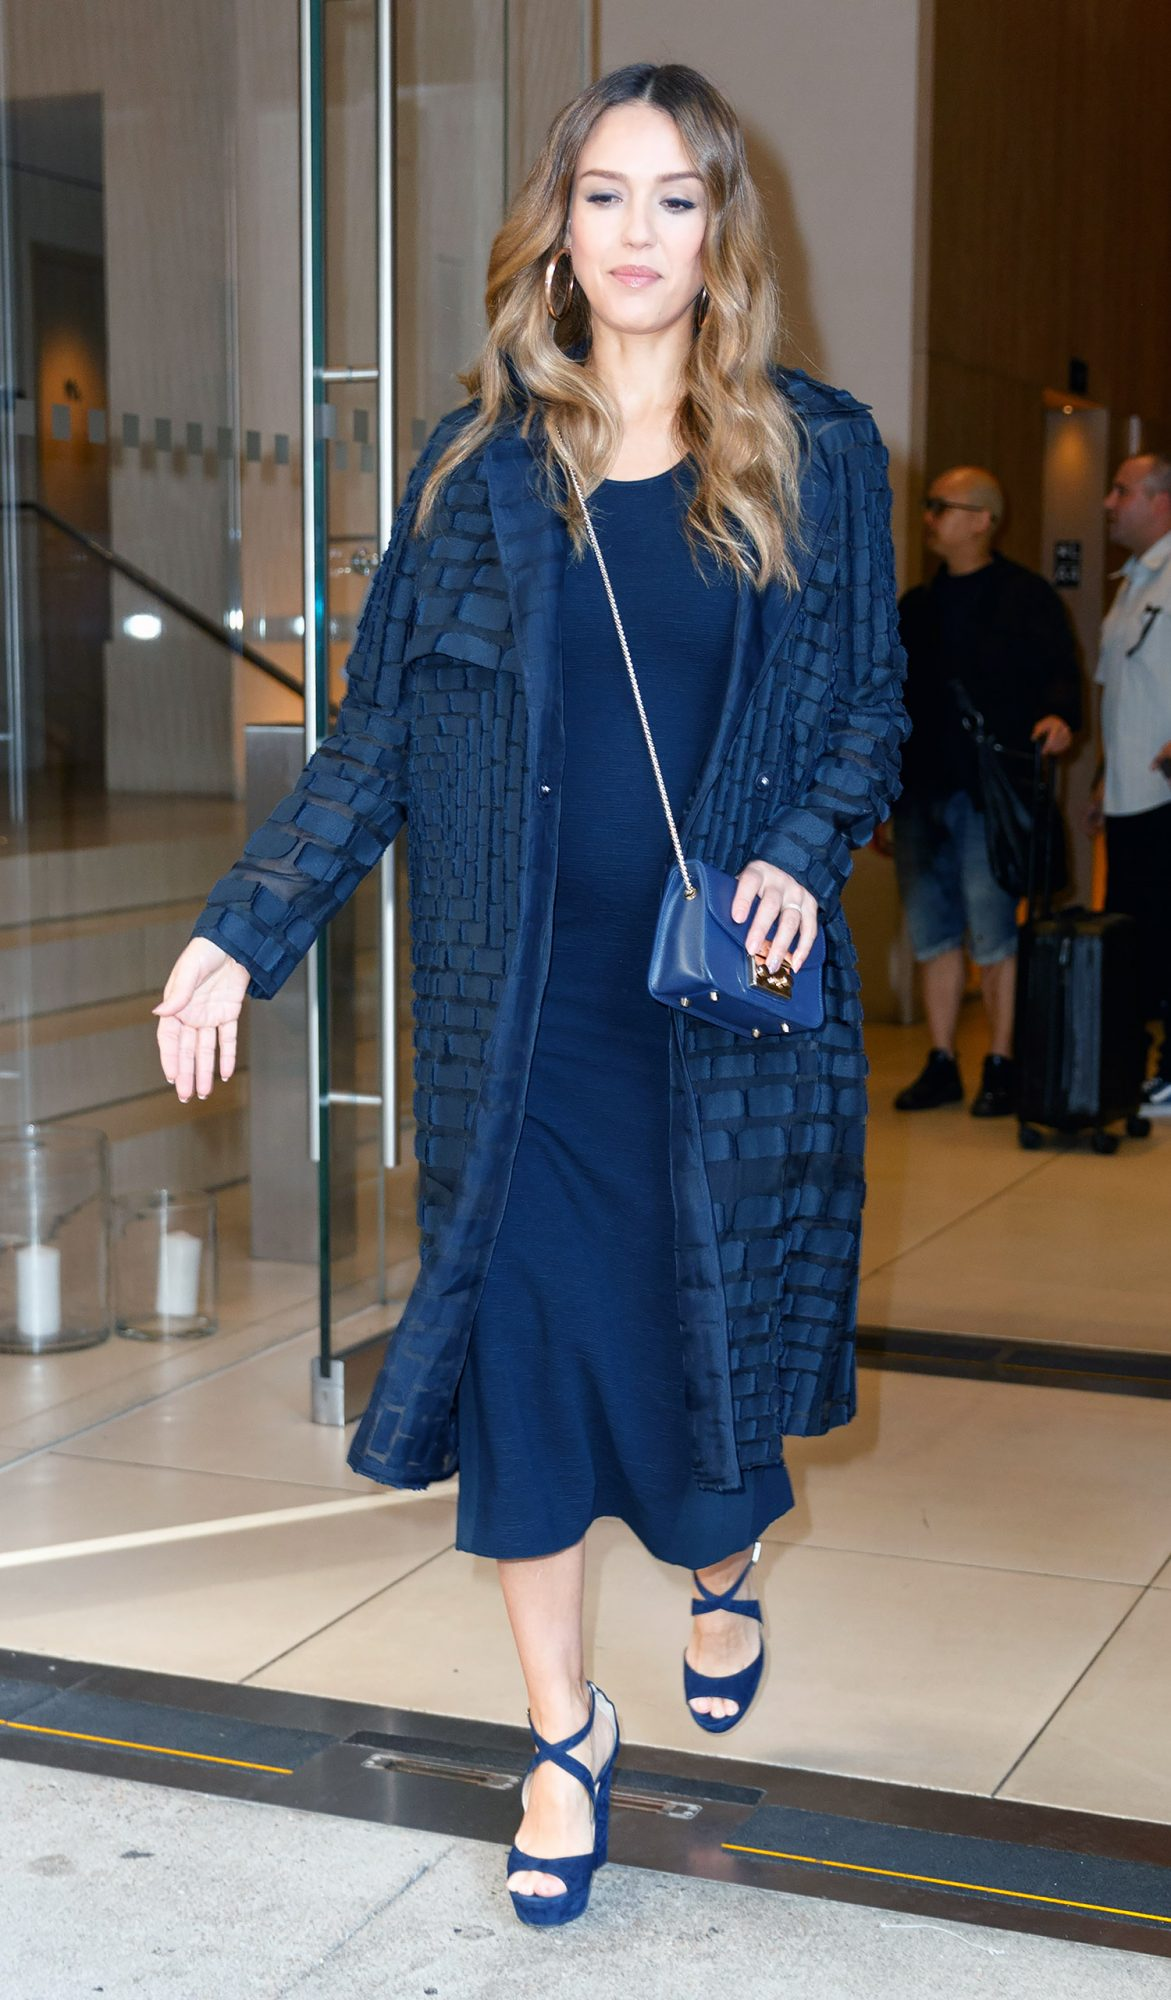 Jessica Alba out and about in New York looking very pregnant